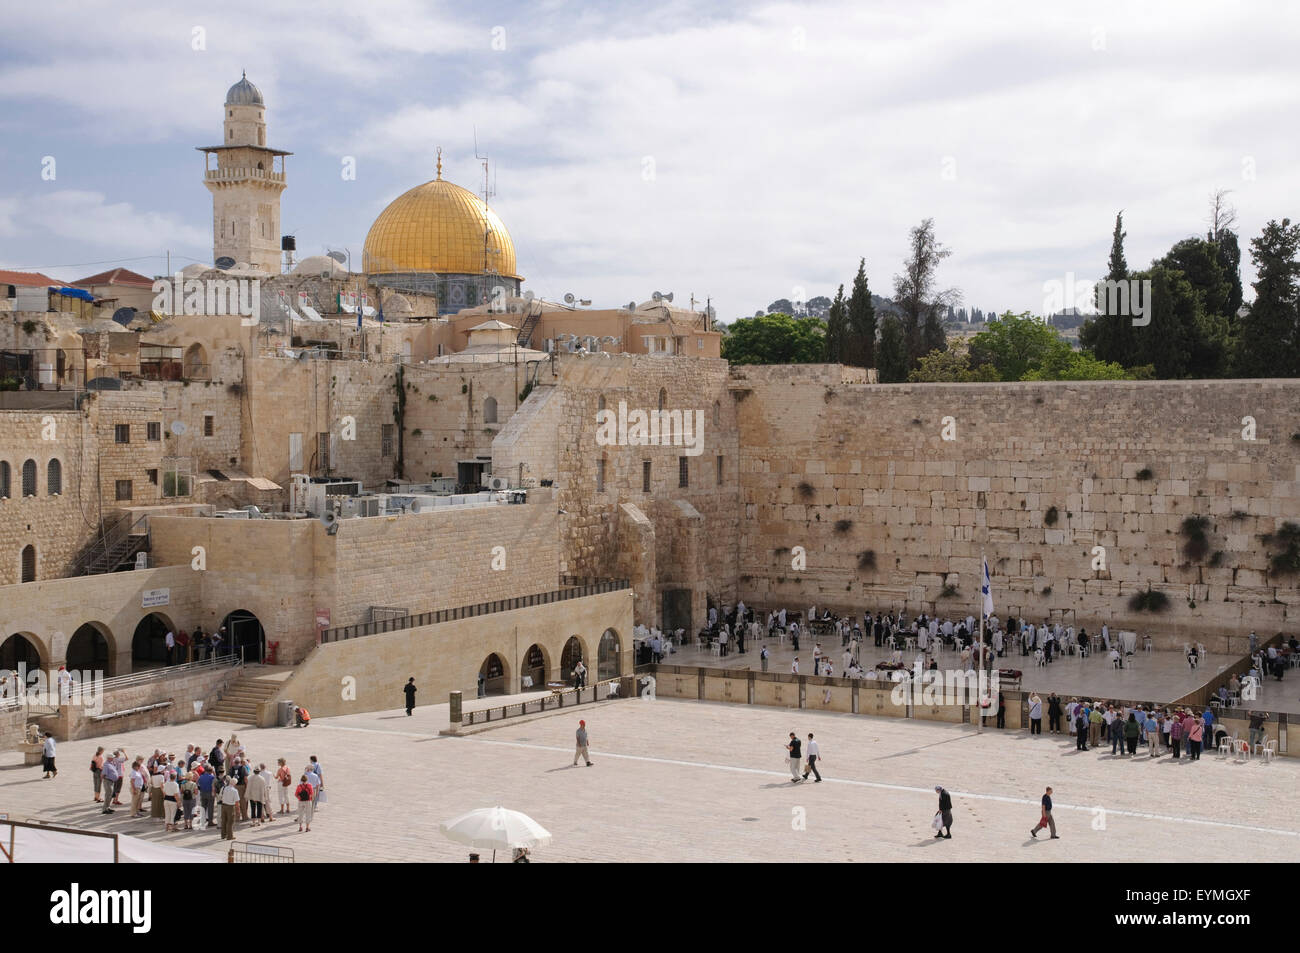 The Wailing Wall (Israel, Jerusalem): a description of why it is so called, how to write a note 23